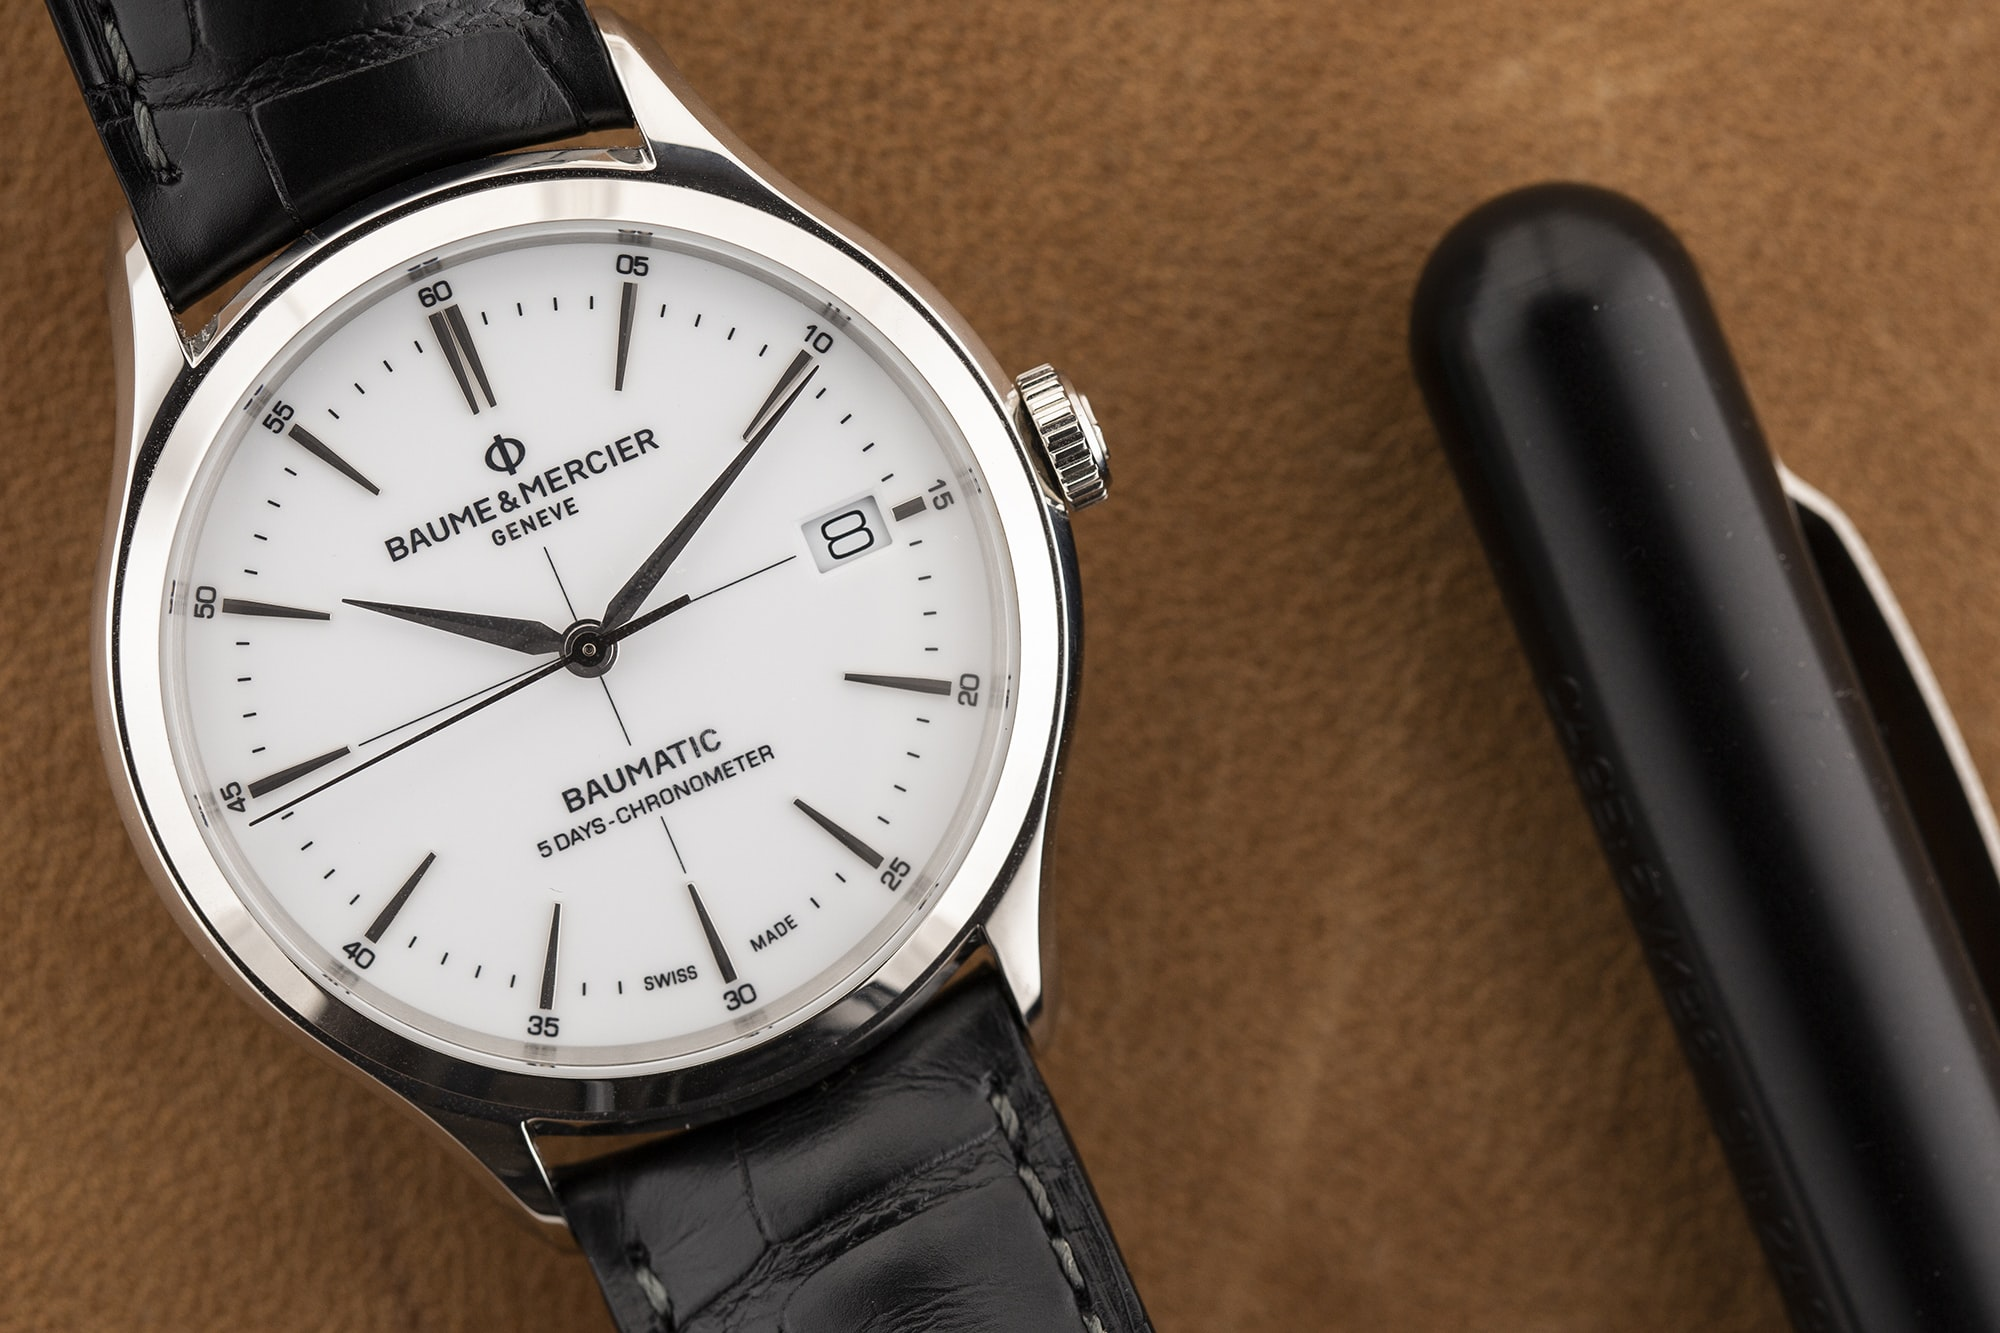 A Week On The Wrist: The Baume & Mercier Clifton Baumatic COSC 3H0A9629